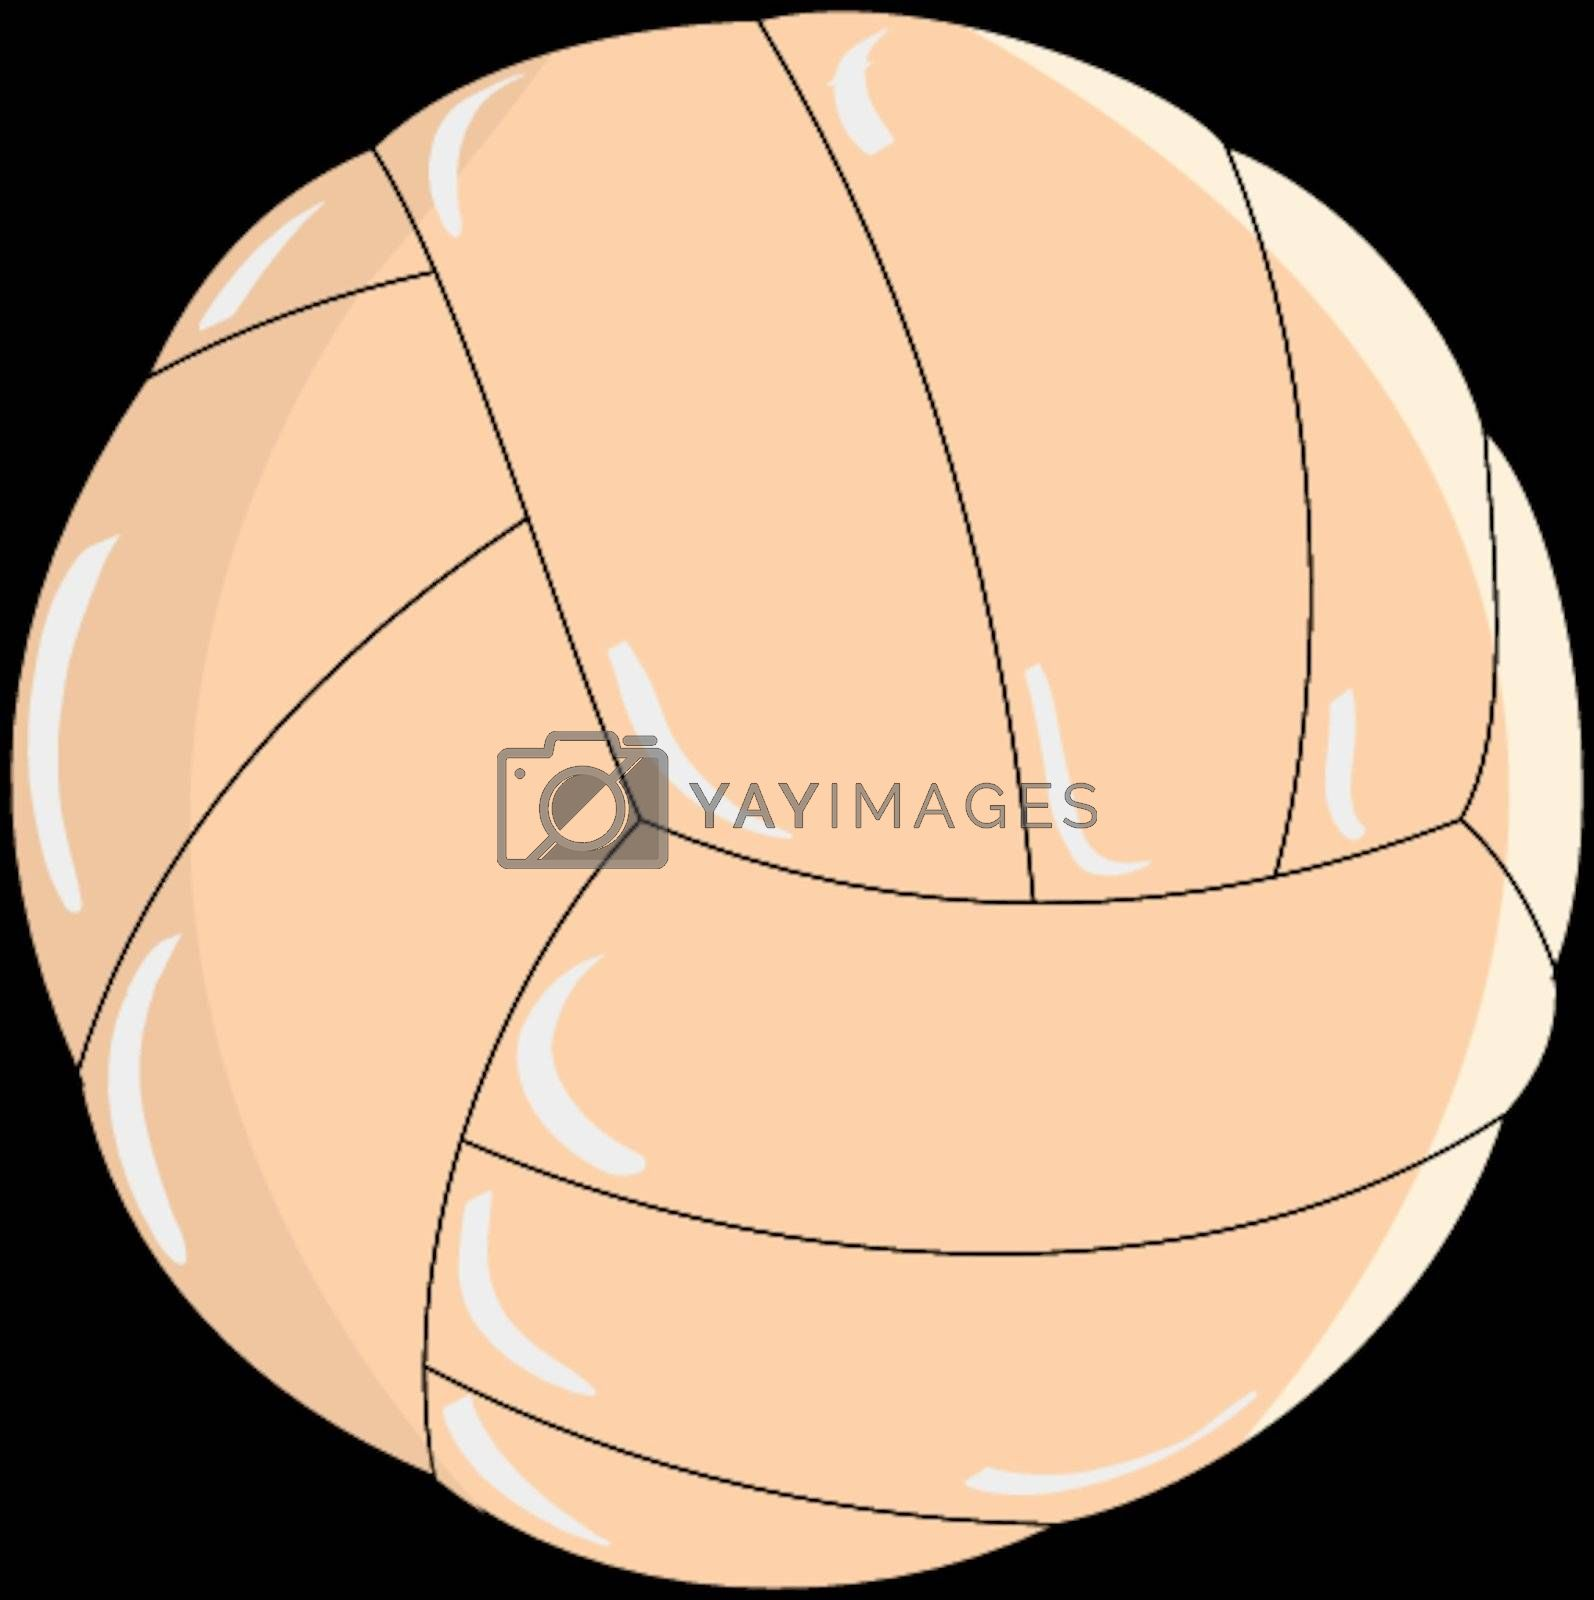 Royalty free image of Volleyball ball by Perysty